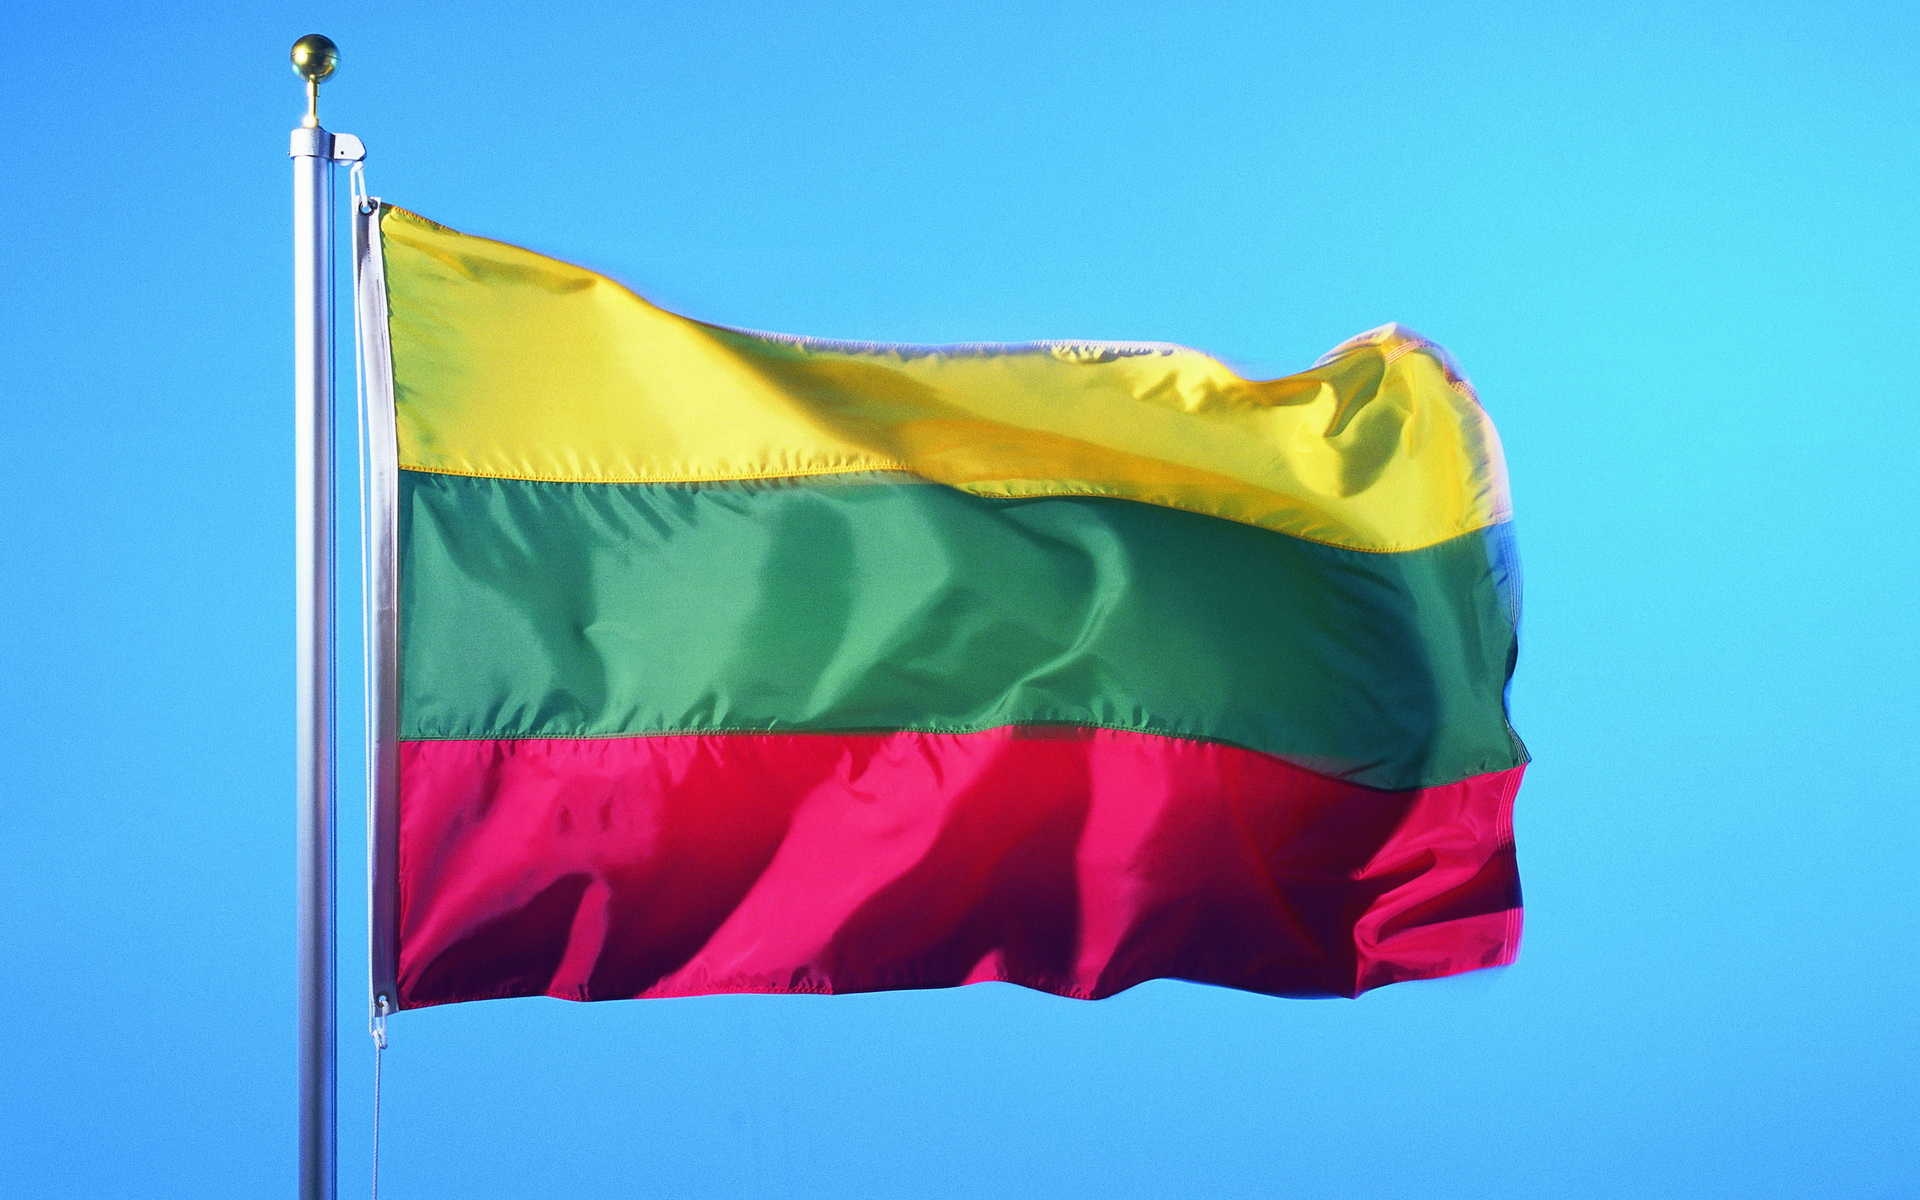 Chevron leaves Lithuania: Russia's Win, Europe's Loss